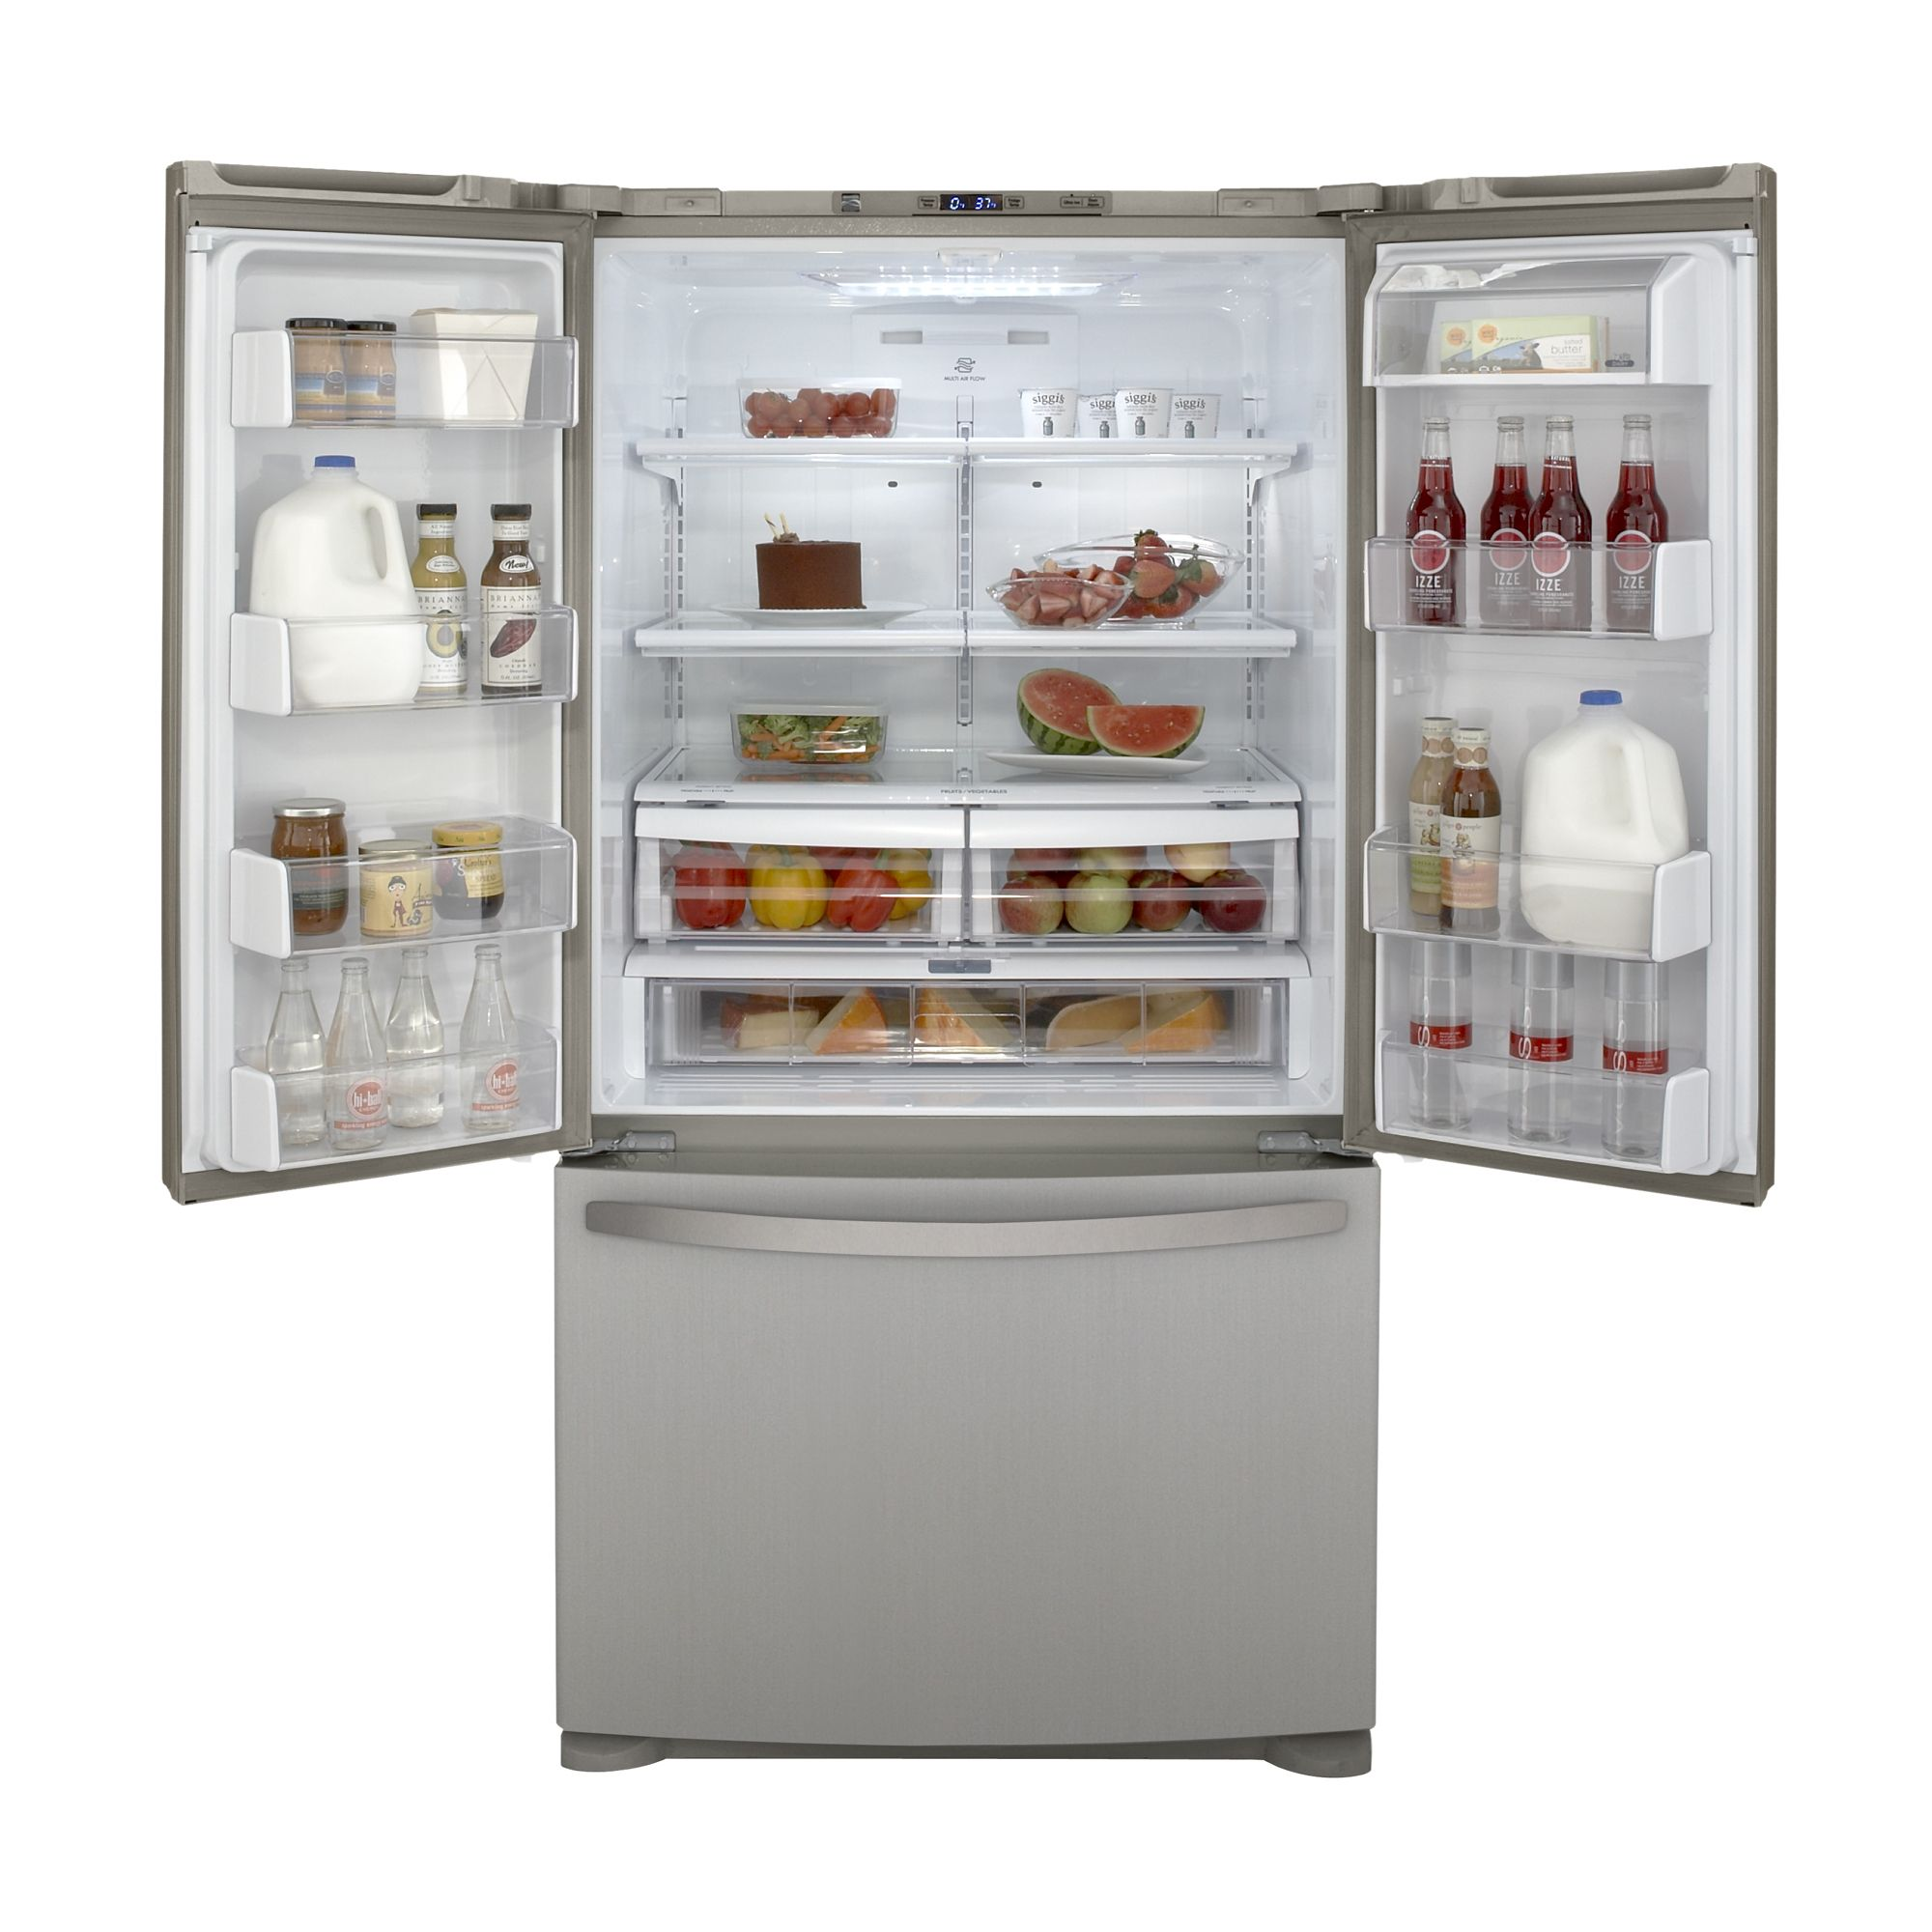 Kenmore 25.0 cu. ft. French Door Bottom-Freezer Refrigerator - Metallic